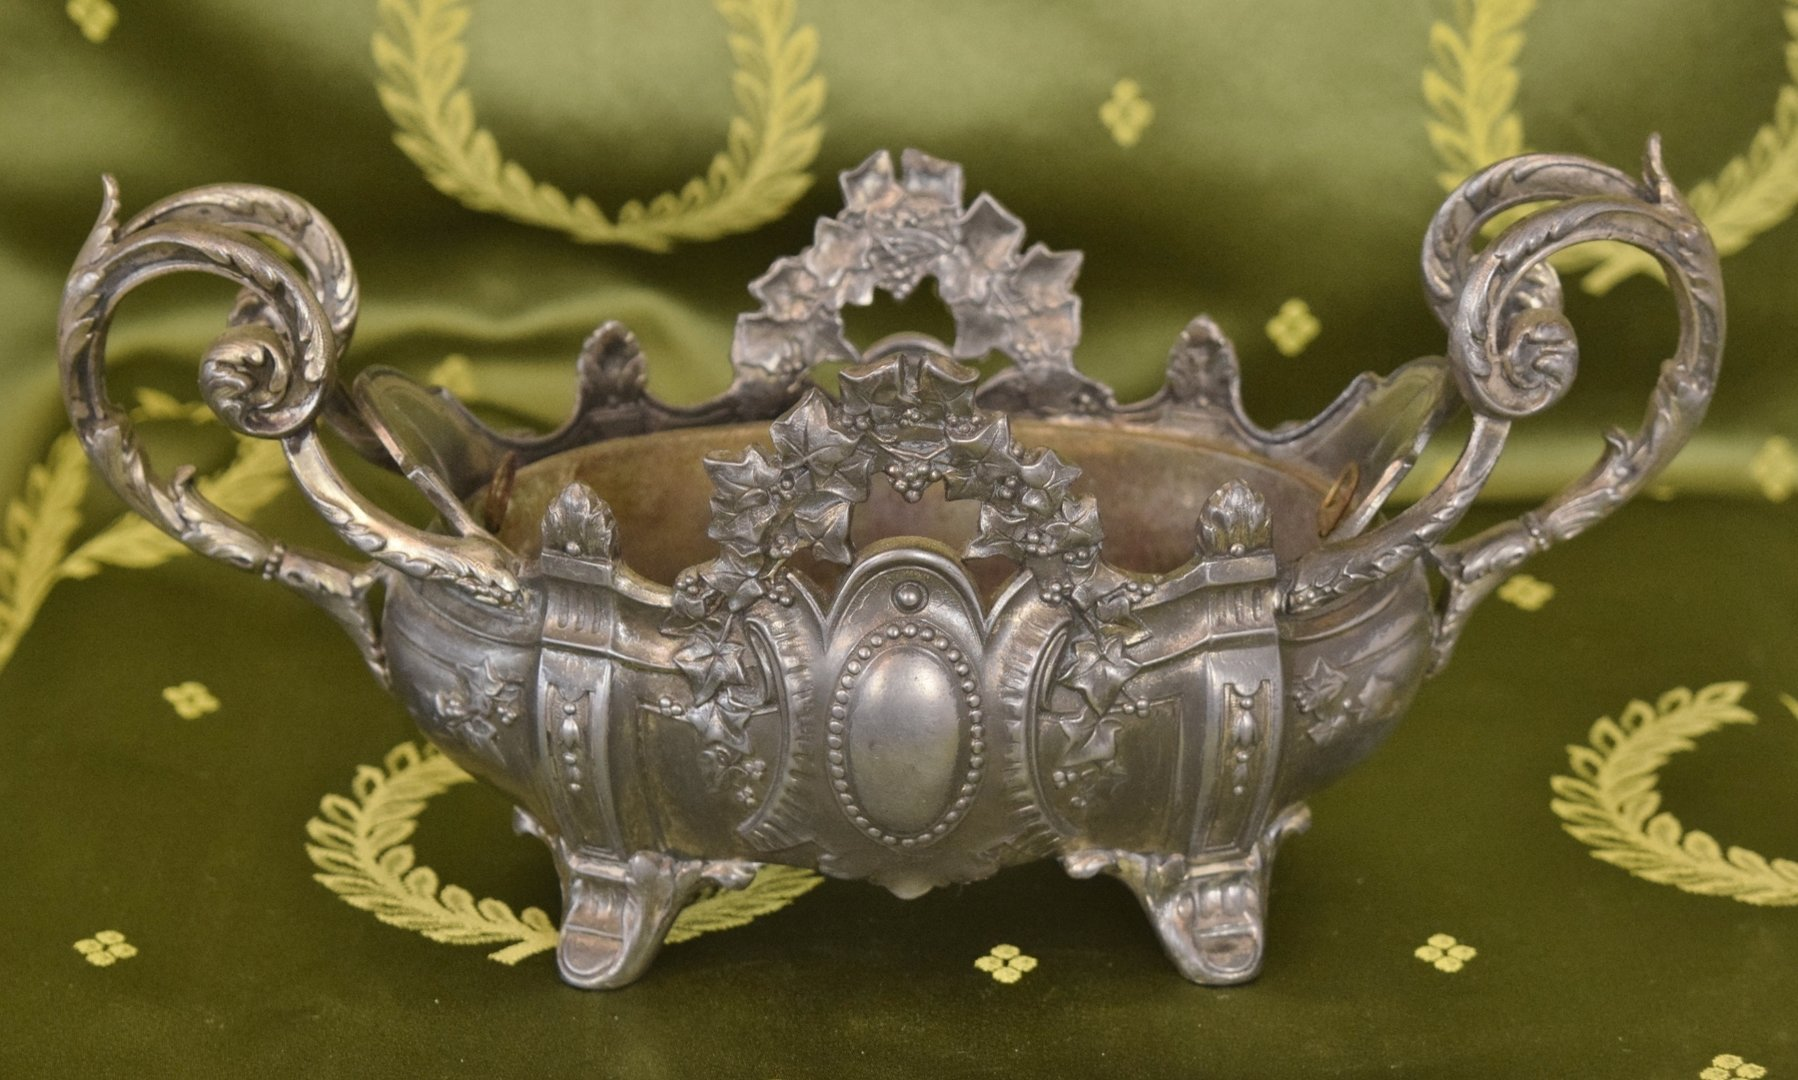 B940 - Beautiful Antique French Spelter Planter / Jardiniere, Ivy Crest, Chateau Chic